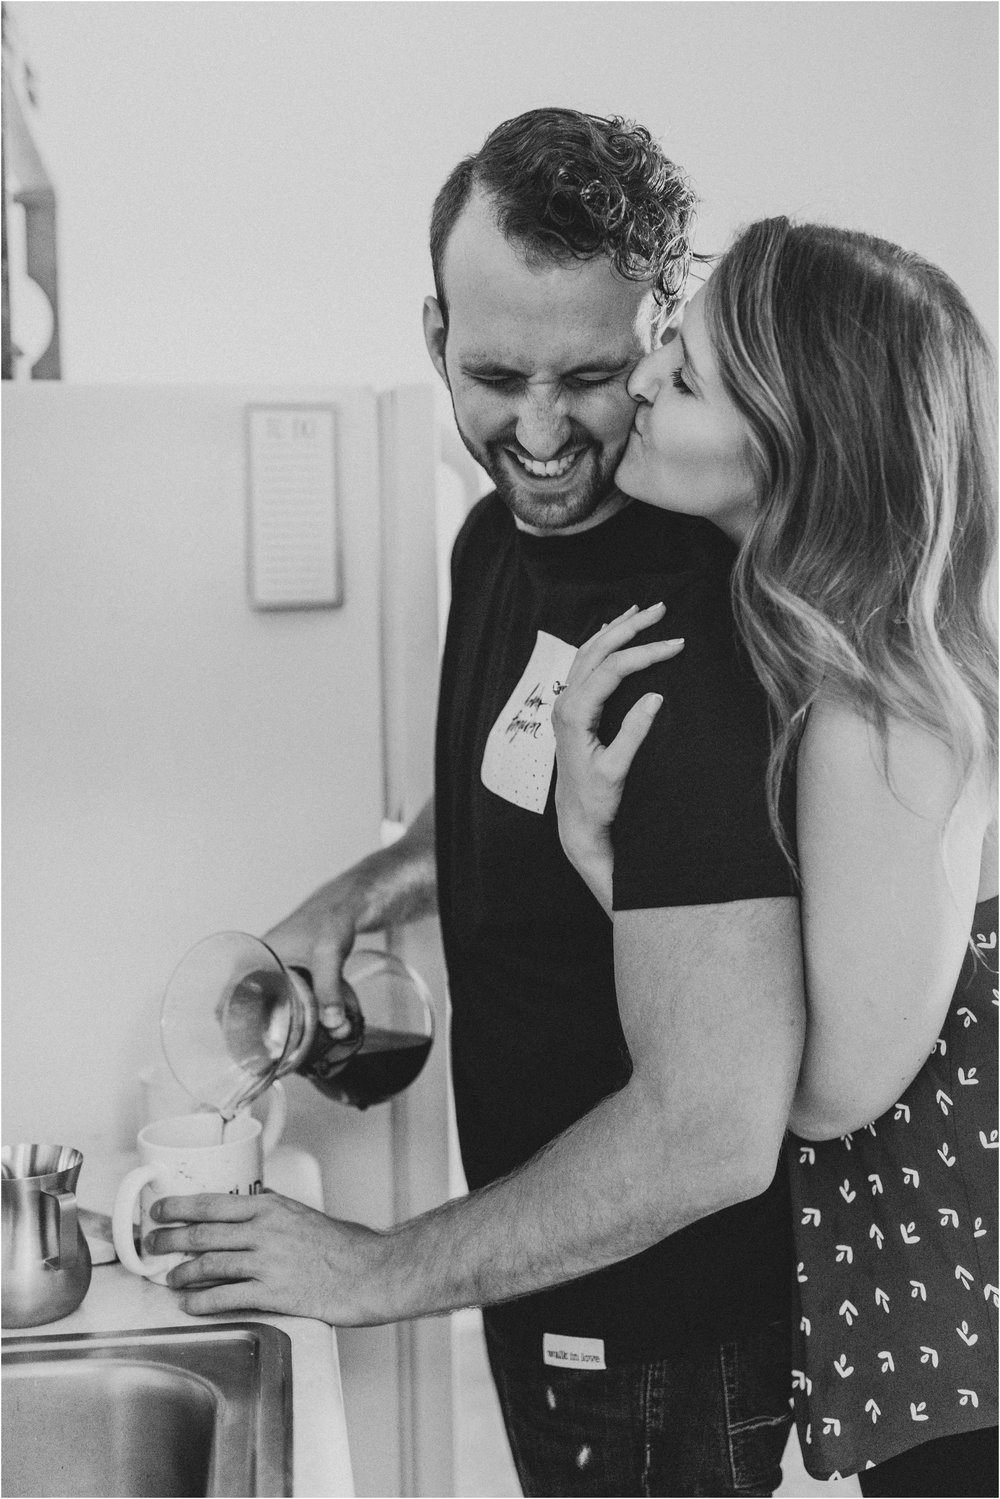 steph-reif-jordan-cox-in-home-lifestyle-engagement-session-hazel-lining-travel-wedding-elopement-photography_0045.jpg